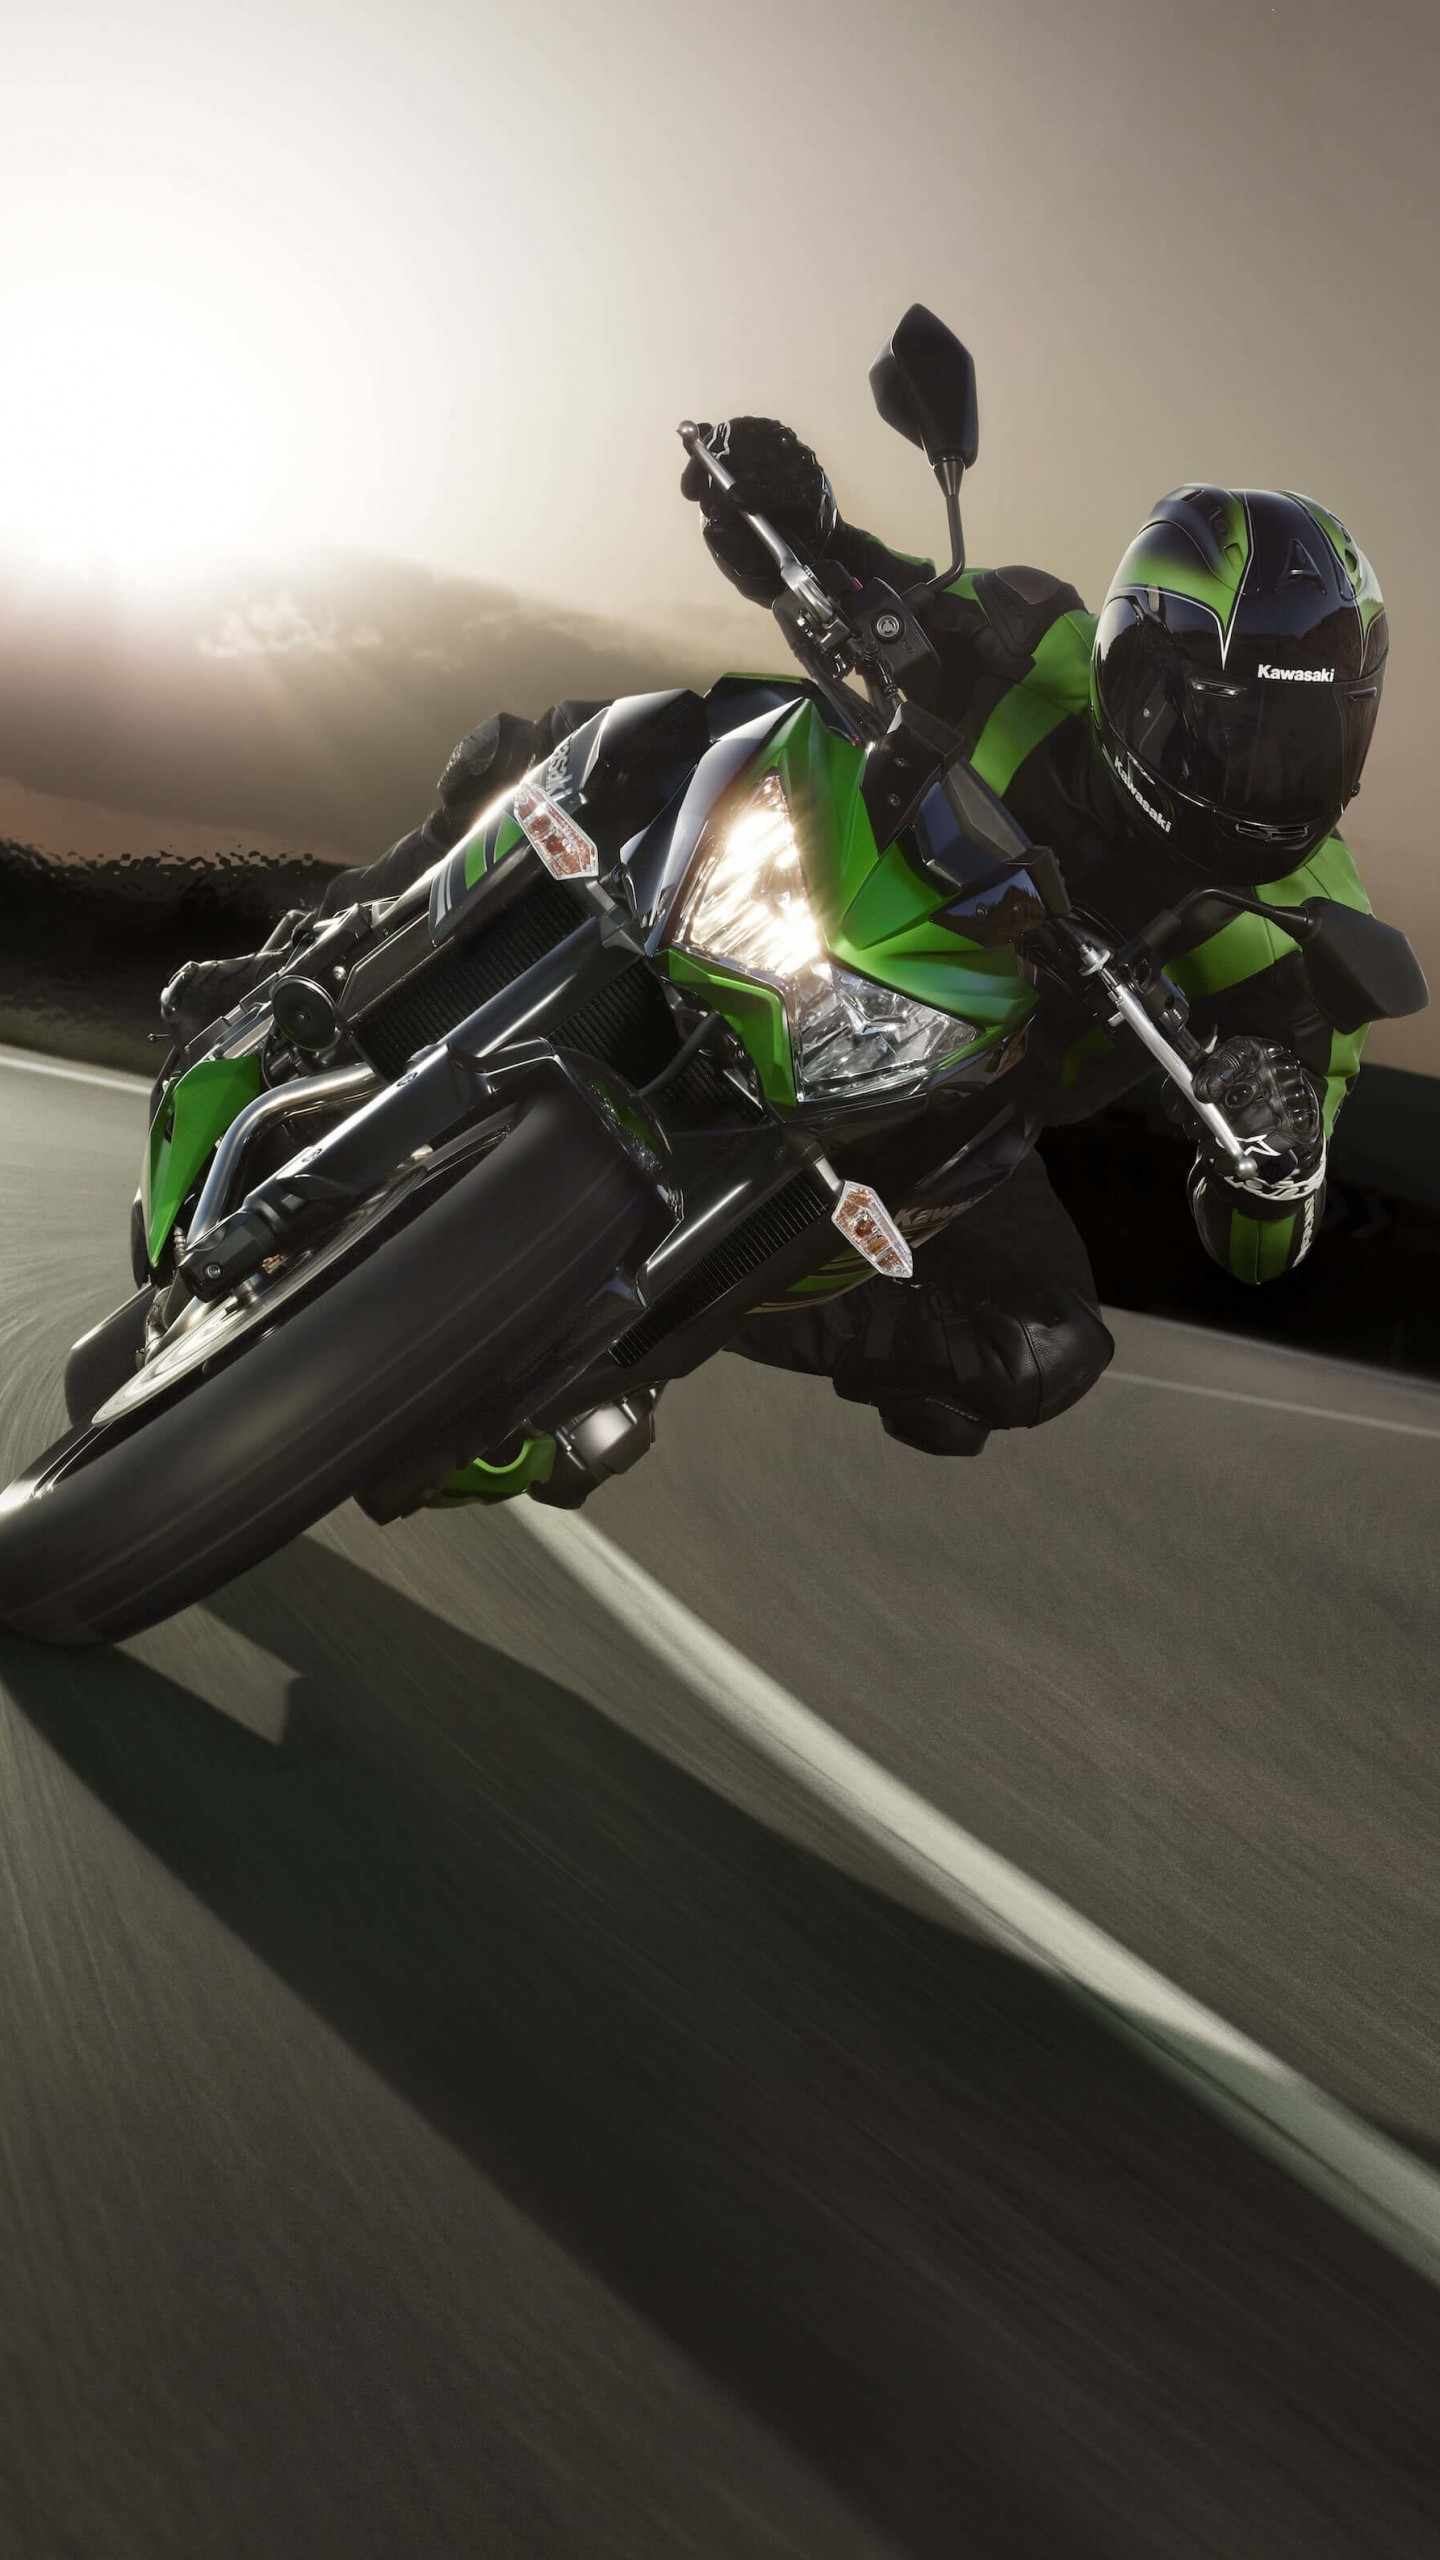 Kawasaki Ninja ZX-10R Wallpaper for SAMSUNG Galaxy Note 4